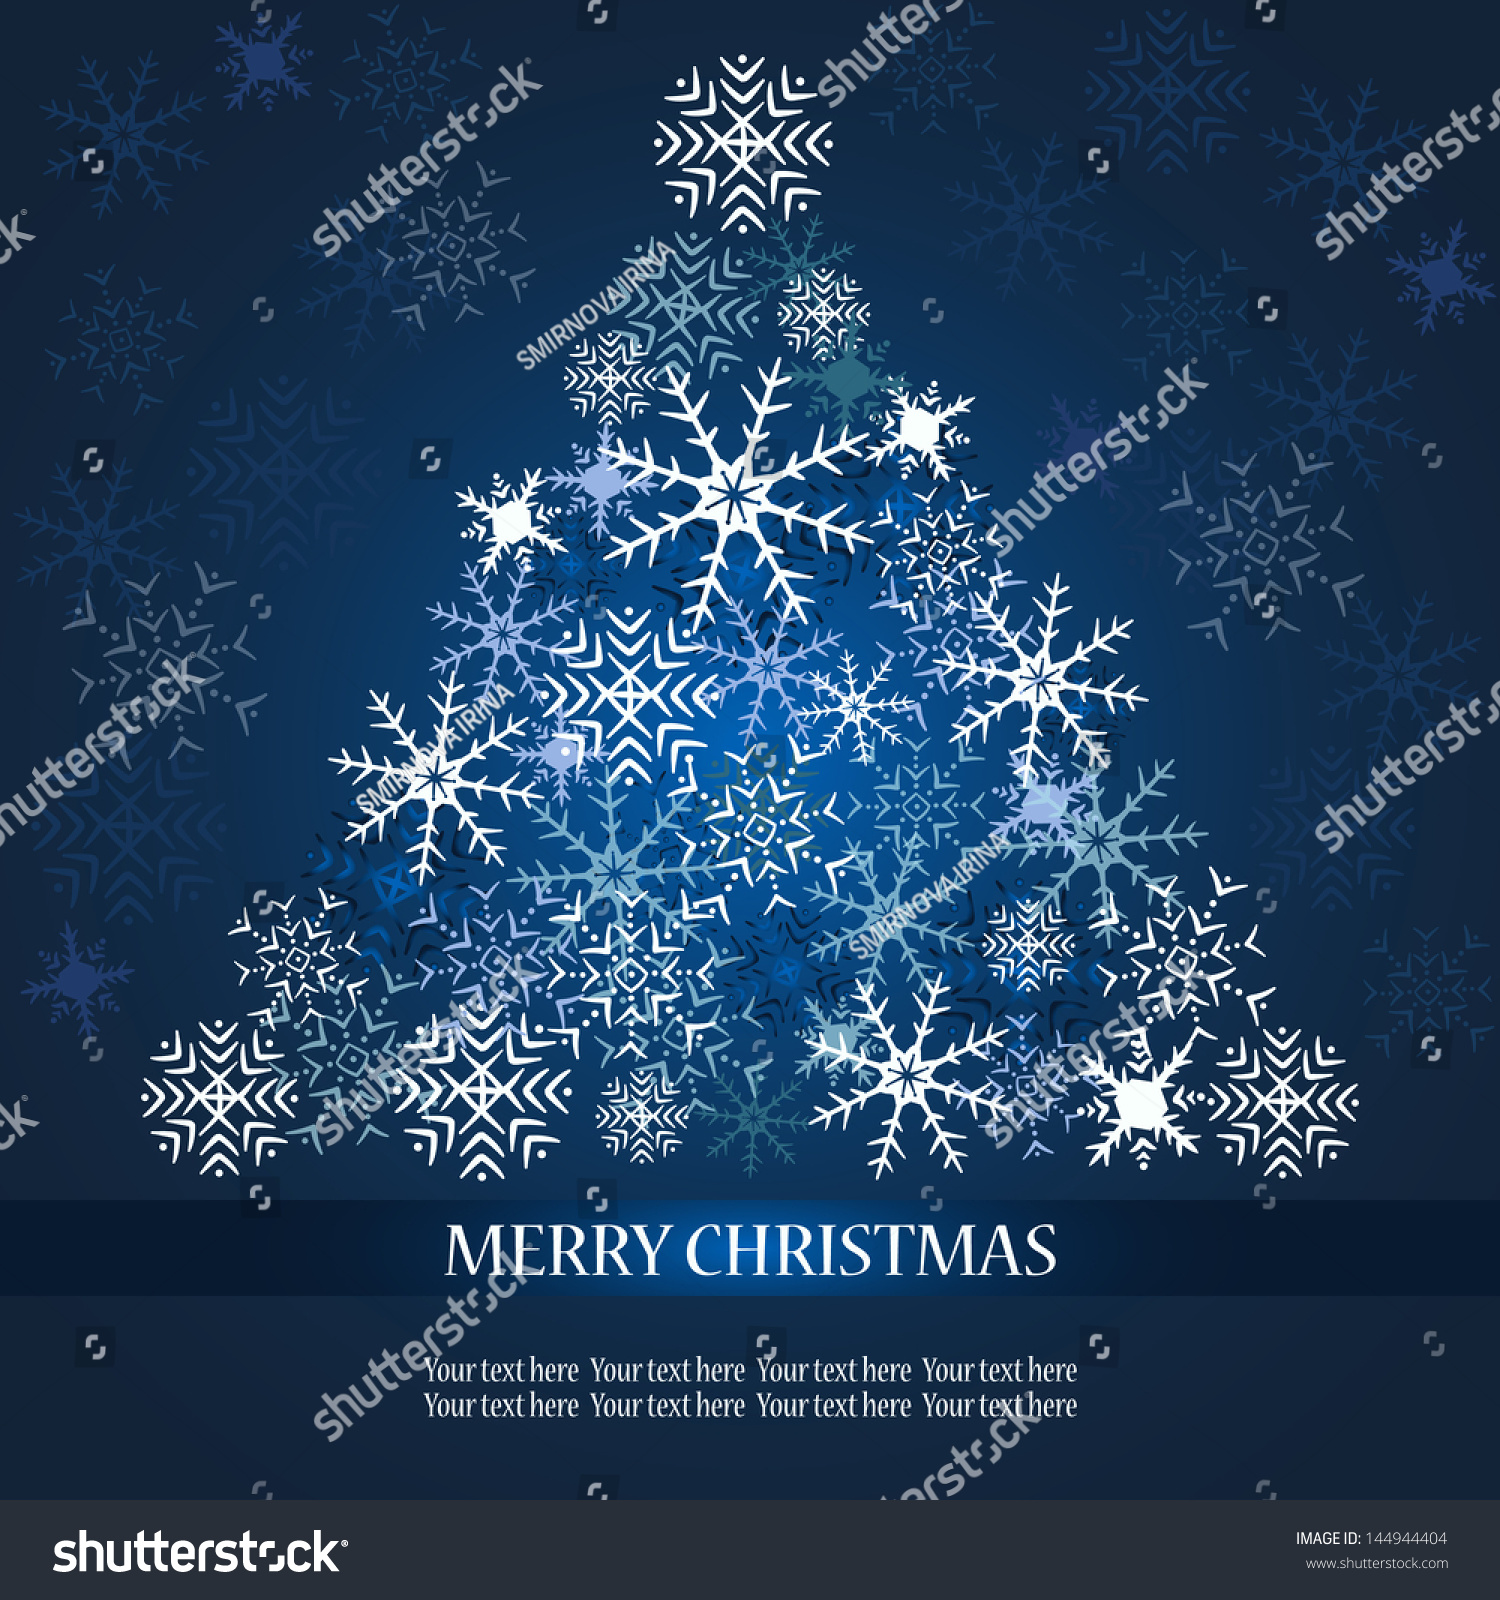 Christmas Tree From Snowflakes Stock Vector Illustration 144944404 Shutterstock